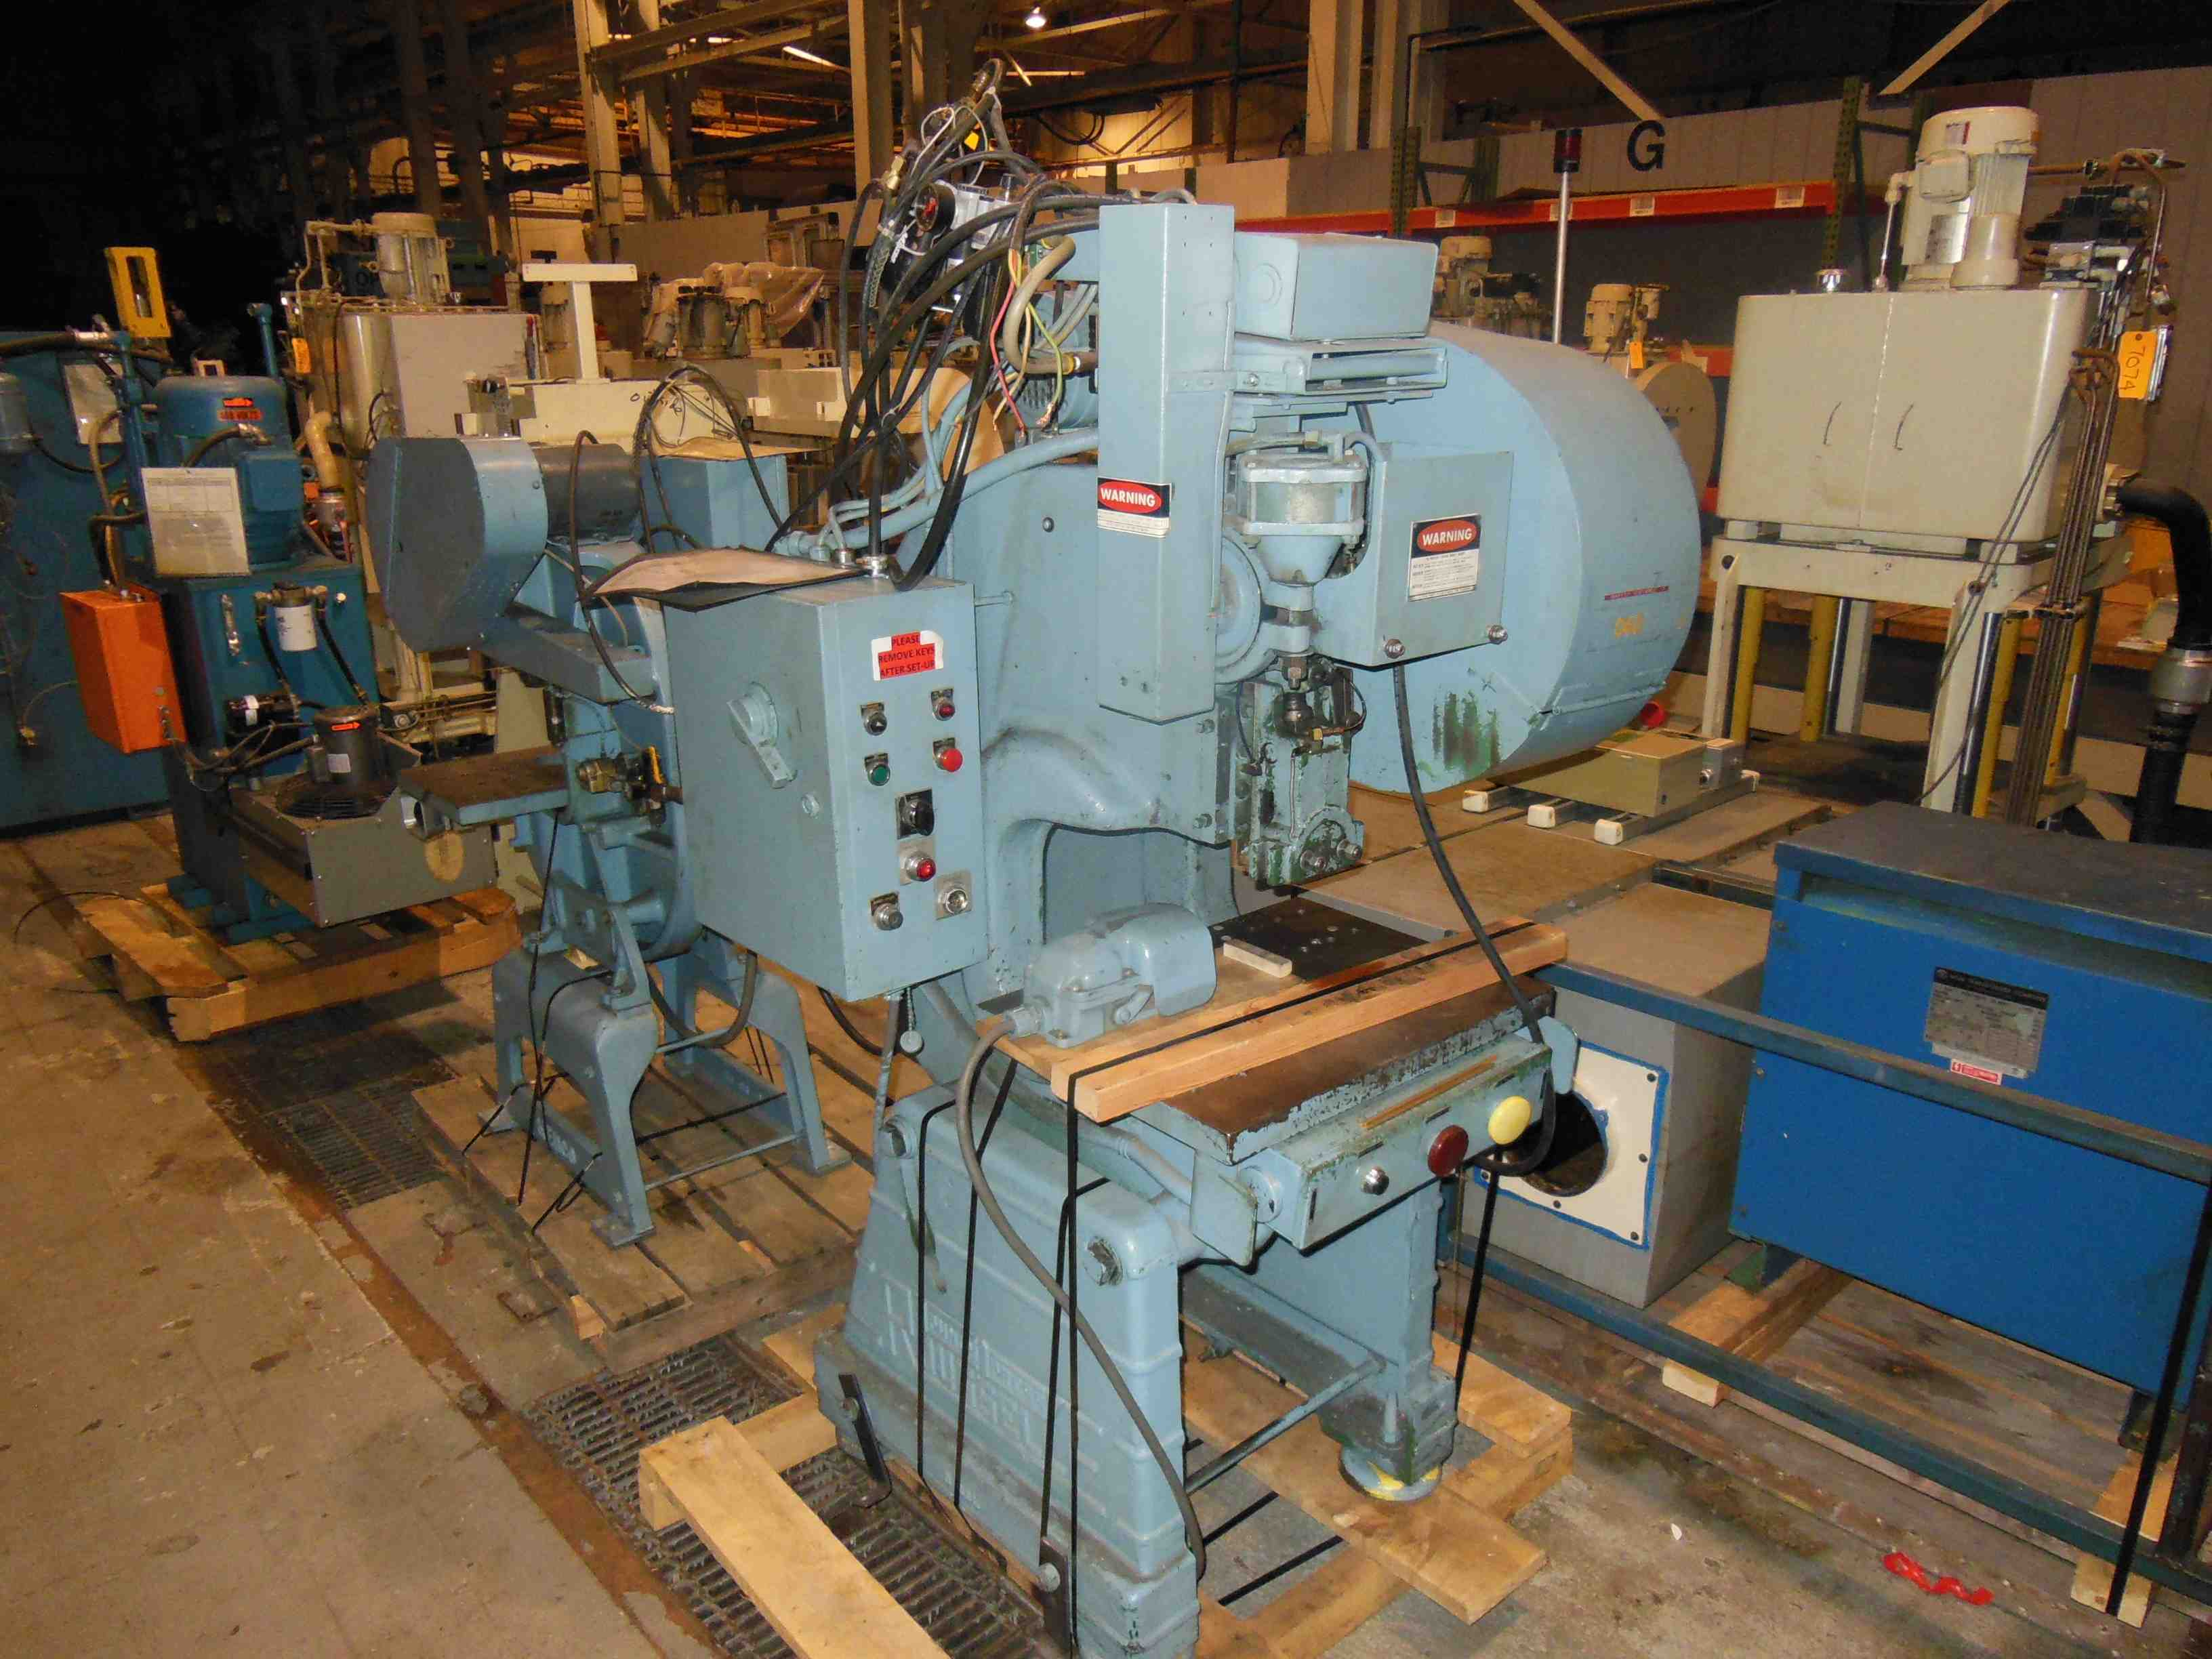 "15 TON ROUSSELLE OBI HIGH SPEED PUNCH PRESS, MODEL 2F, 2"" STR, 8"" SH, 1.5"" ADJ, 24"" LR X 18"" FB BA, 170 SPM, 1973"